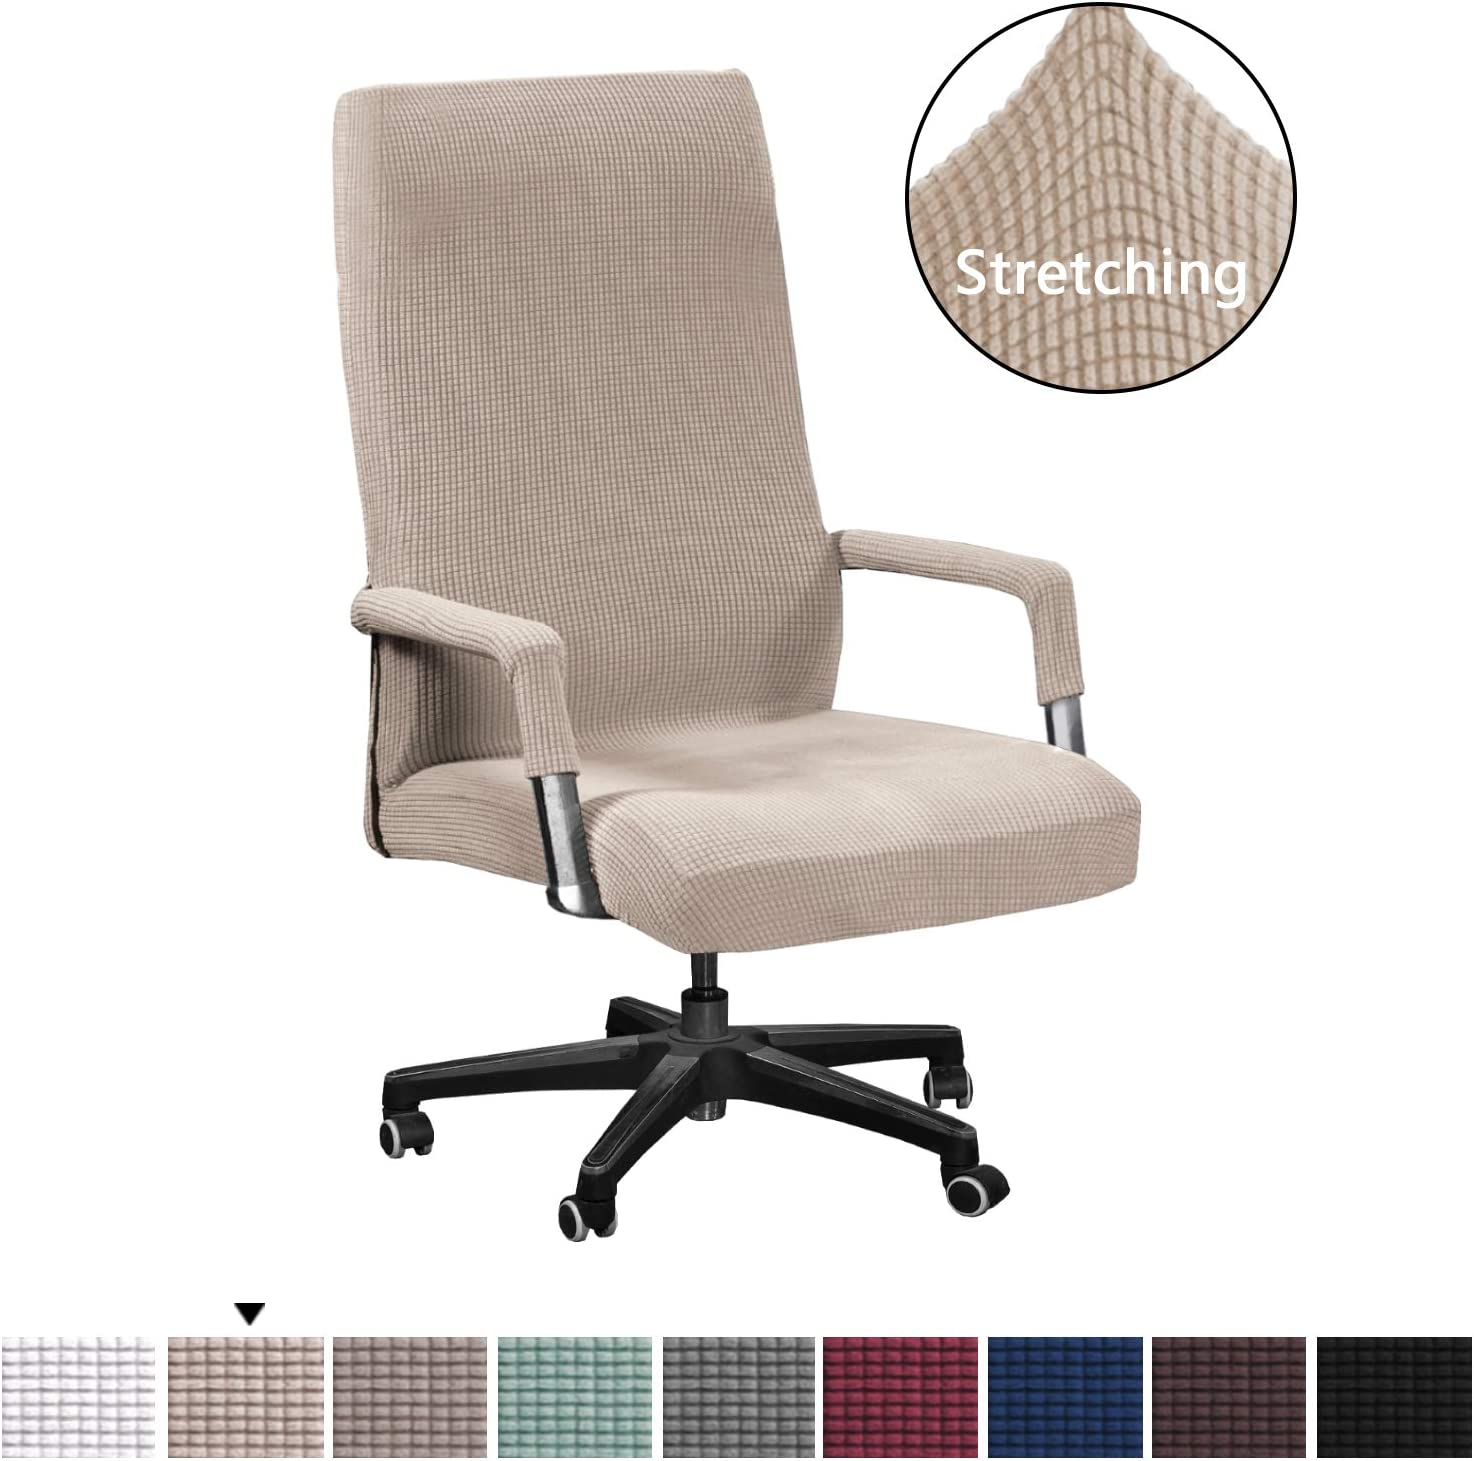 H.VERSAILTEX Office Chair Covers Stretchable Rotating Armchair Slipcover Removable Stretch Computer Office Chair Cover Featuring Jacquard Textured Twill Fabric for Medium Back Office Chair, Sand